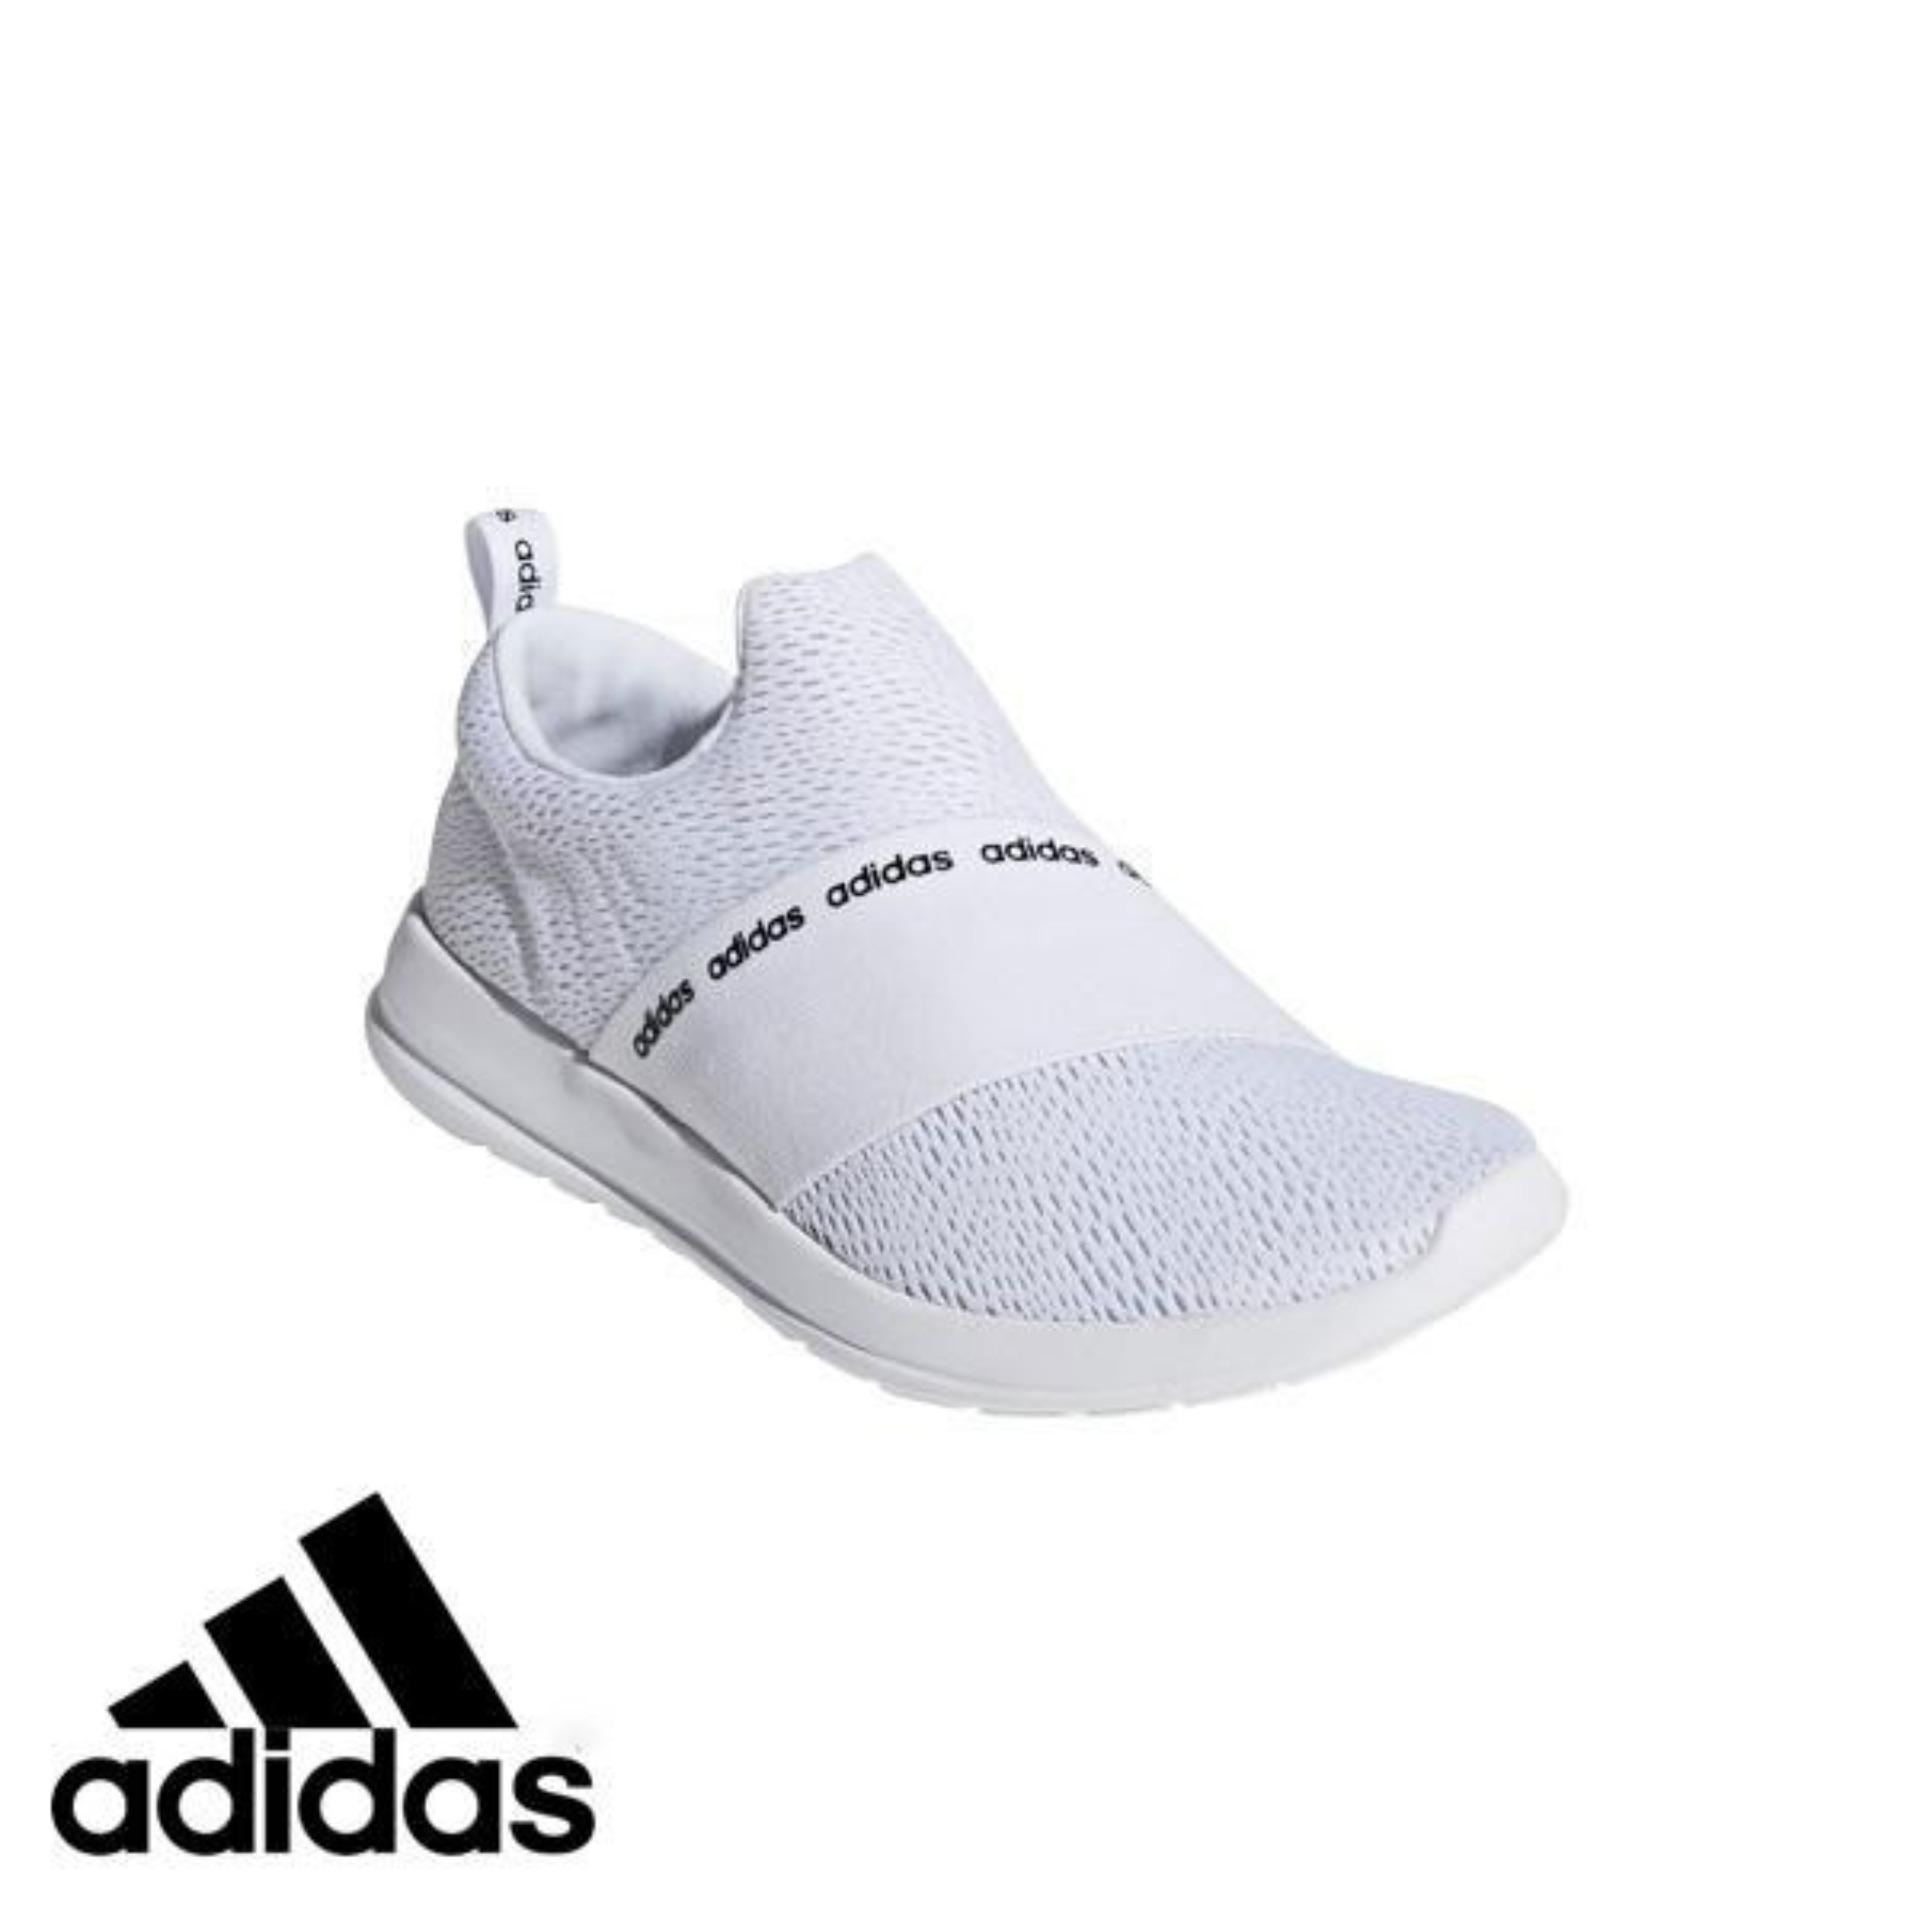 61fdb3b2fcdc9 Adidas Sports Shoes Philippines - Adidas Sports Clothing for sale ...